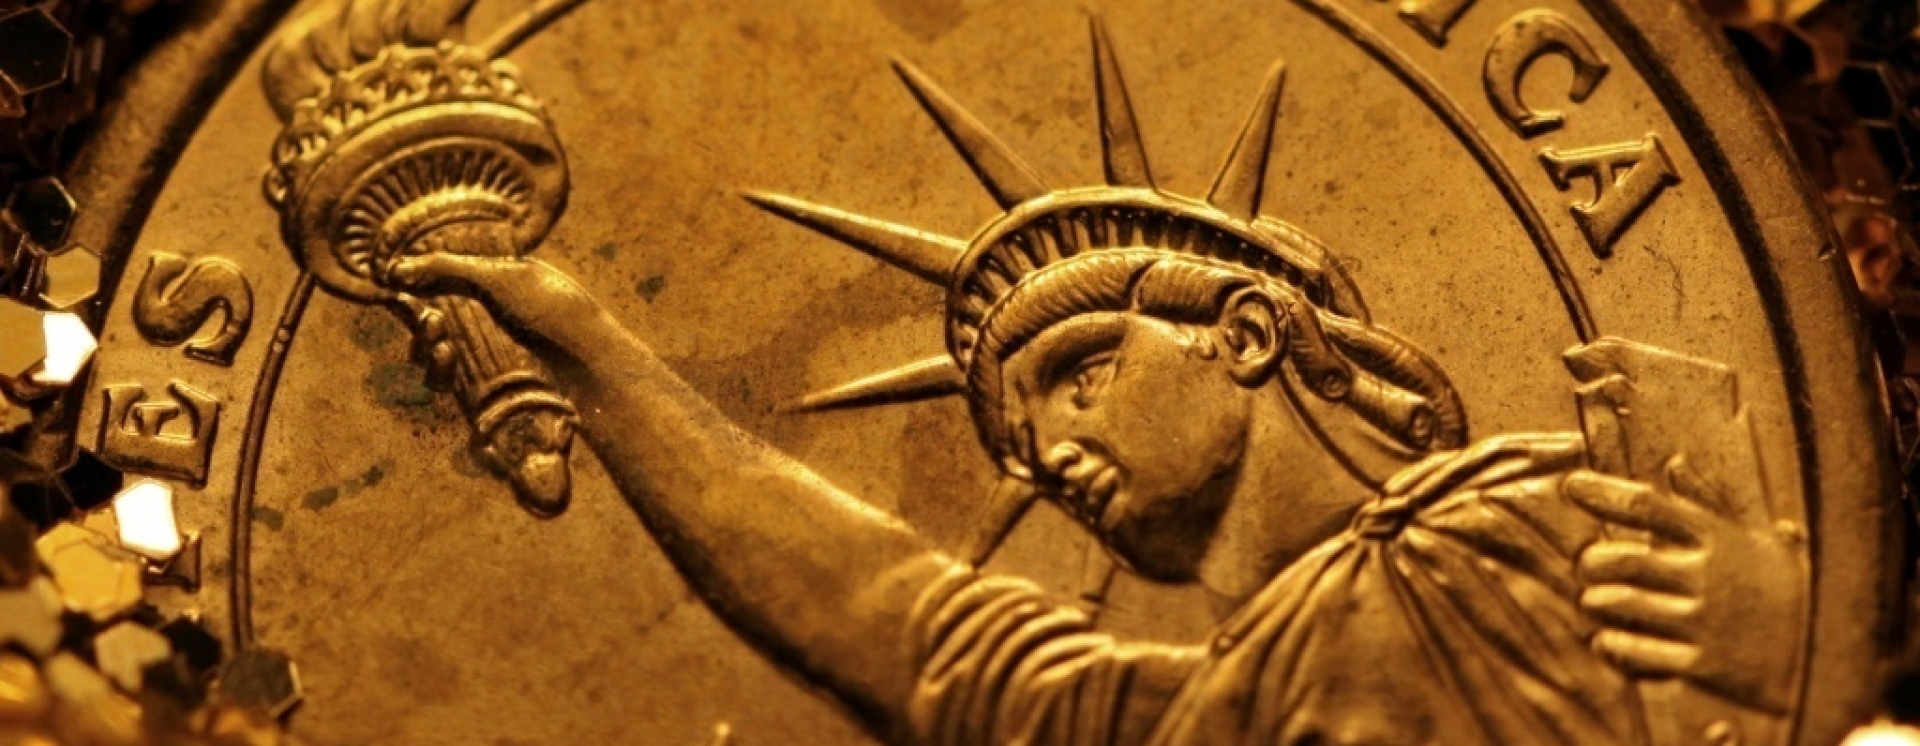 1396881699 liberty buried in gold wallpaper 1024x1024 copy